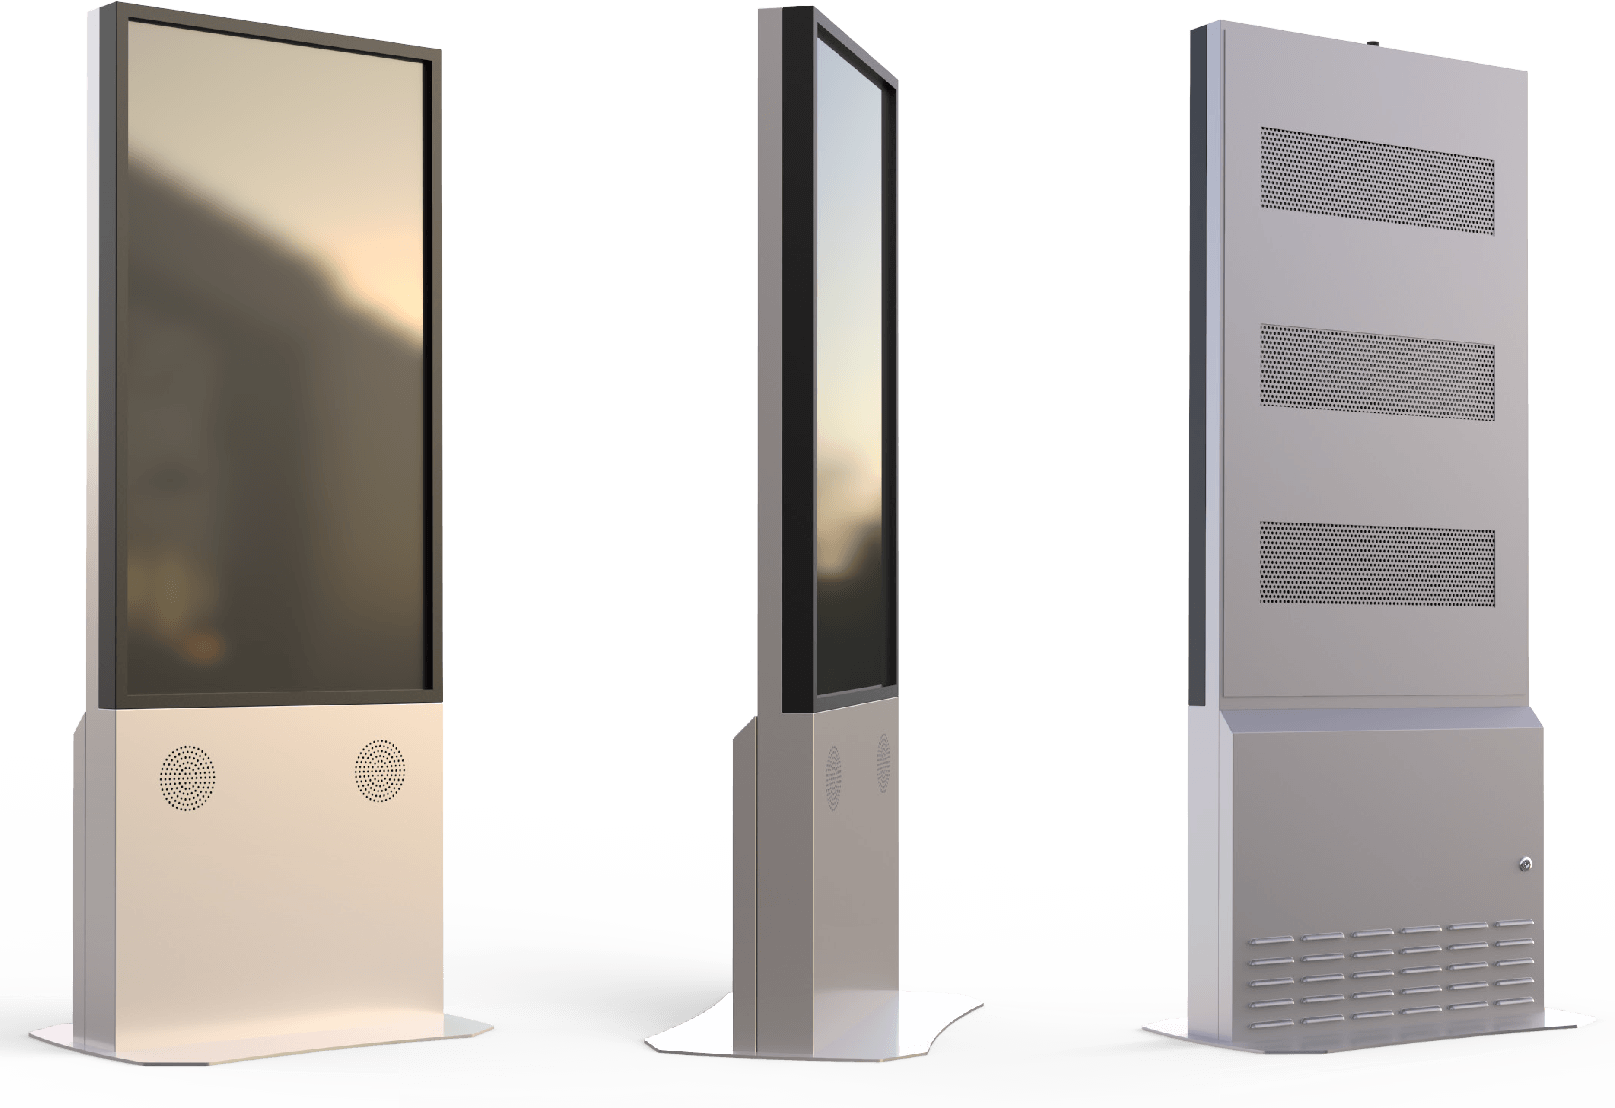 outdoor touch kiosks